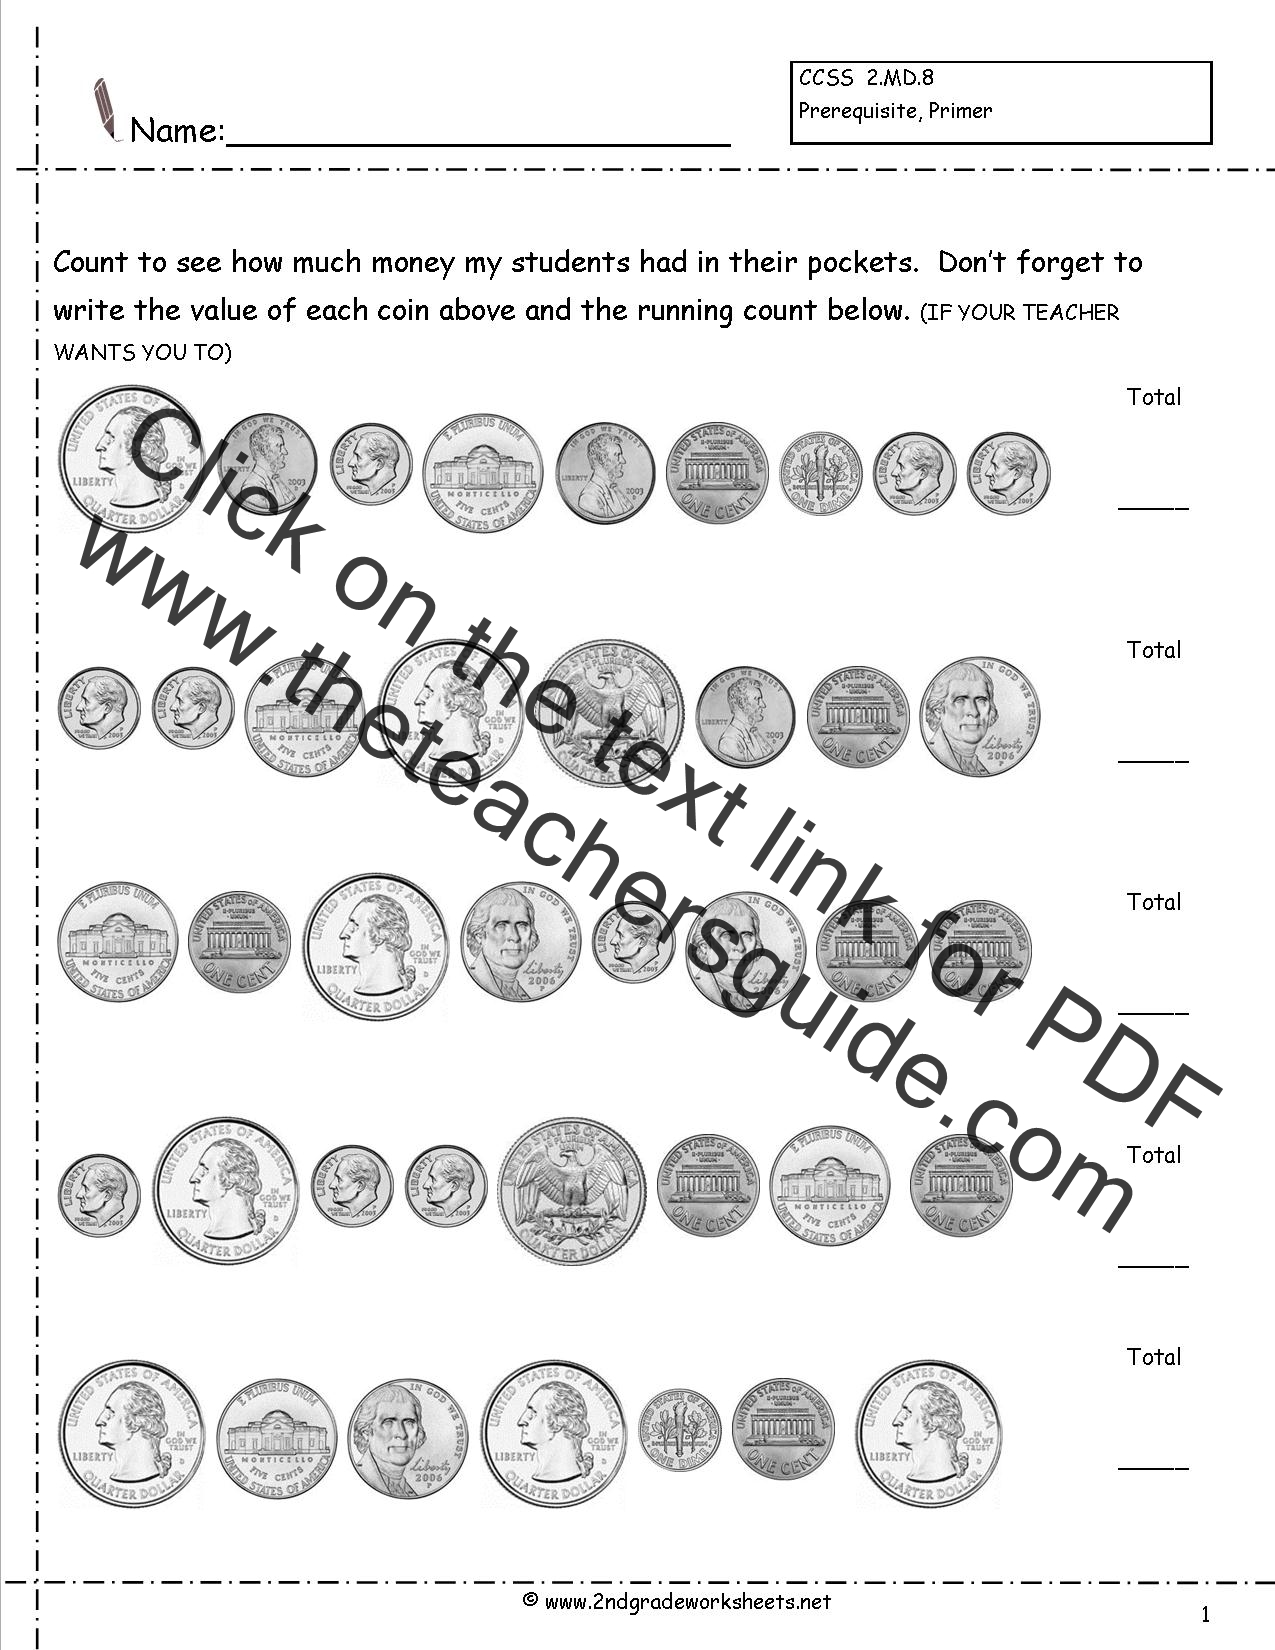 Worksheets Coins Worksheet counting coins and money worksheets printouts worksheets